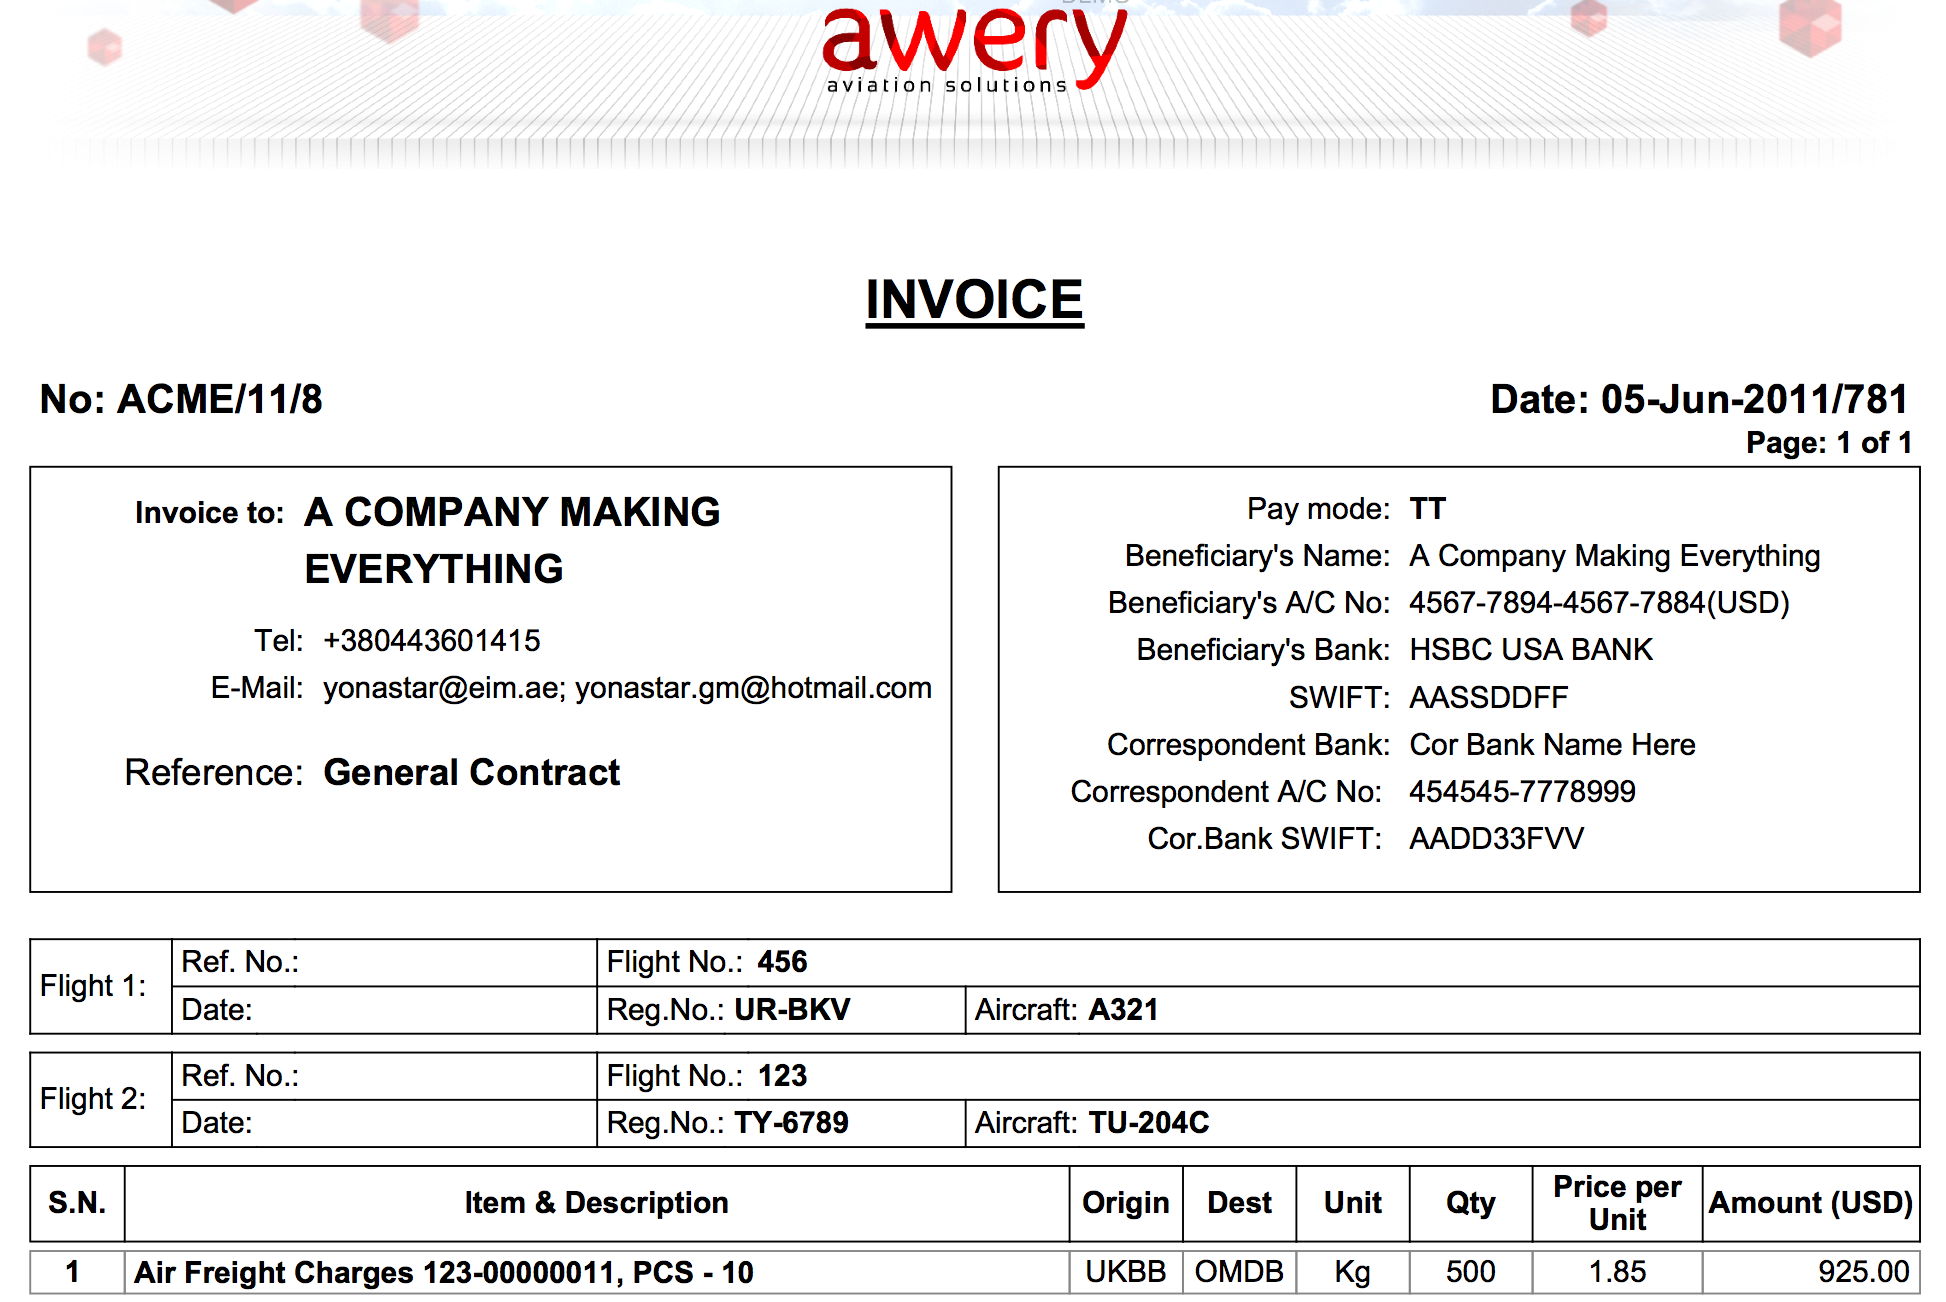 Customizable invoice print out